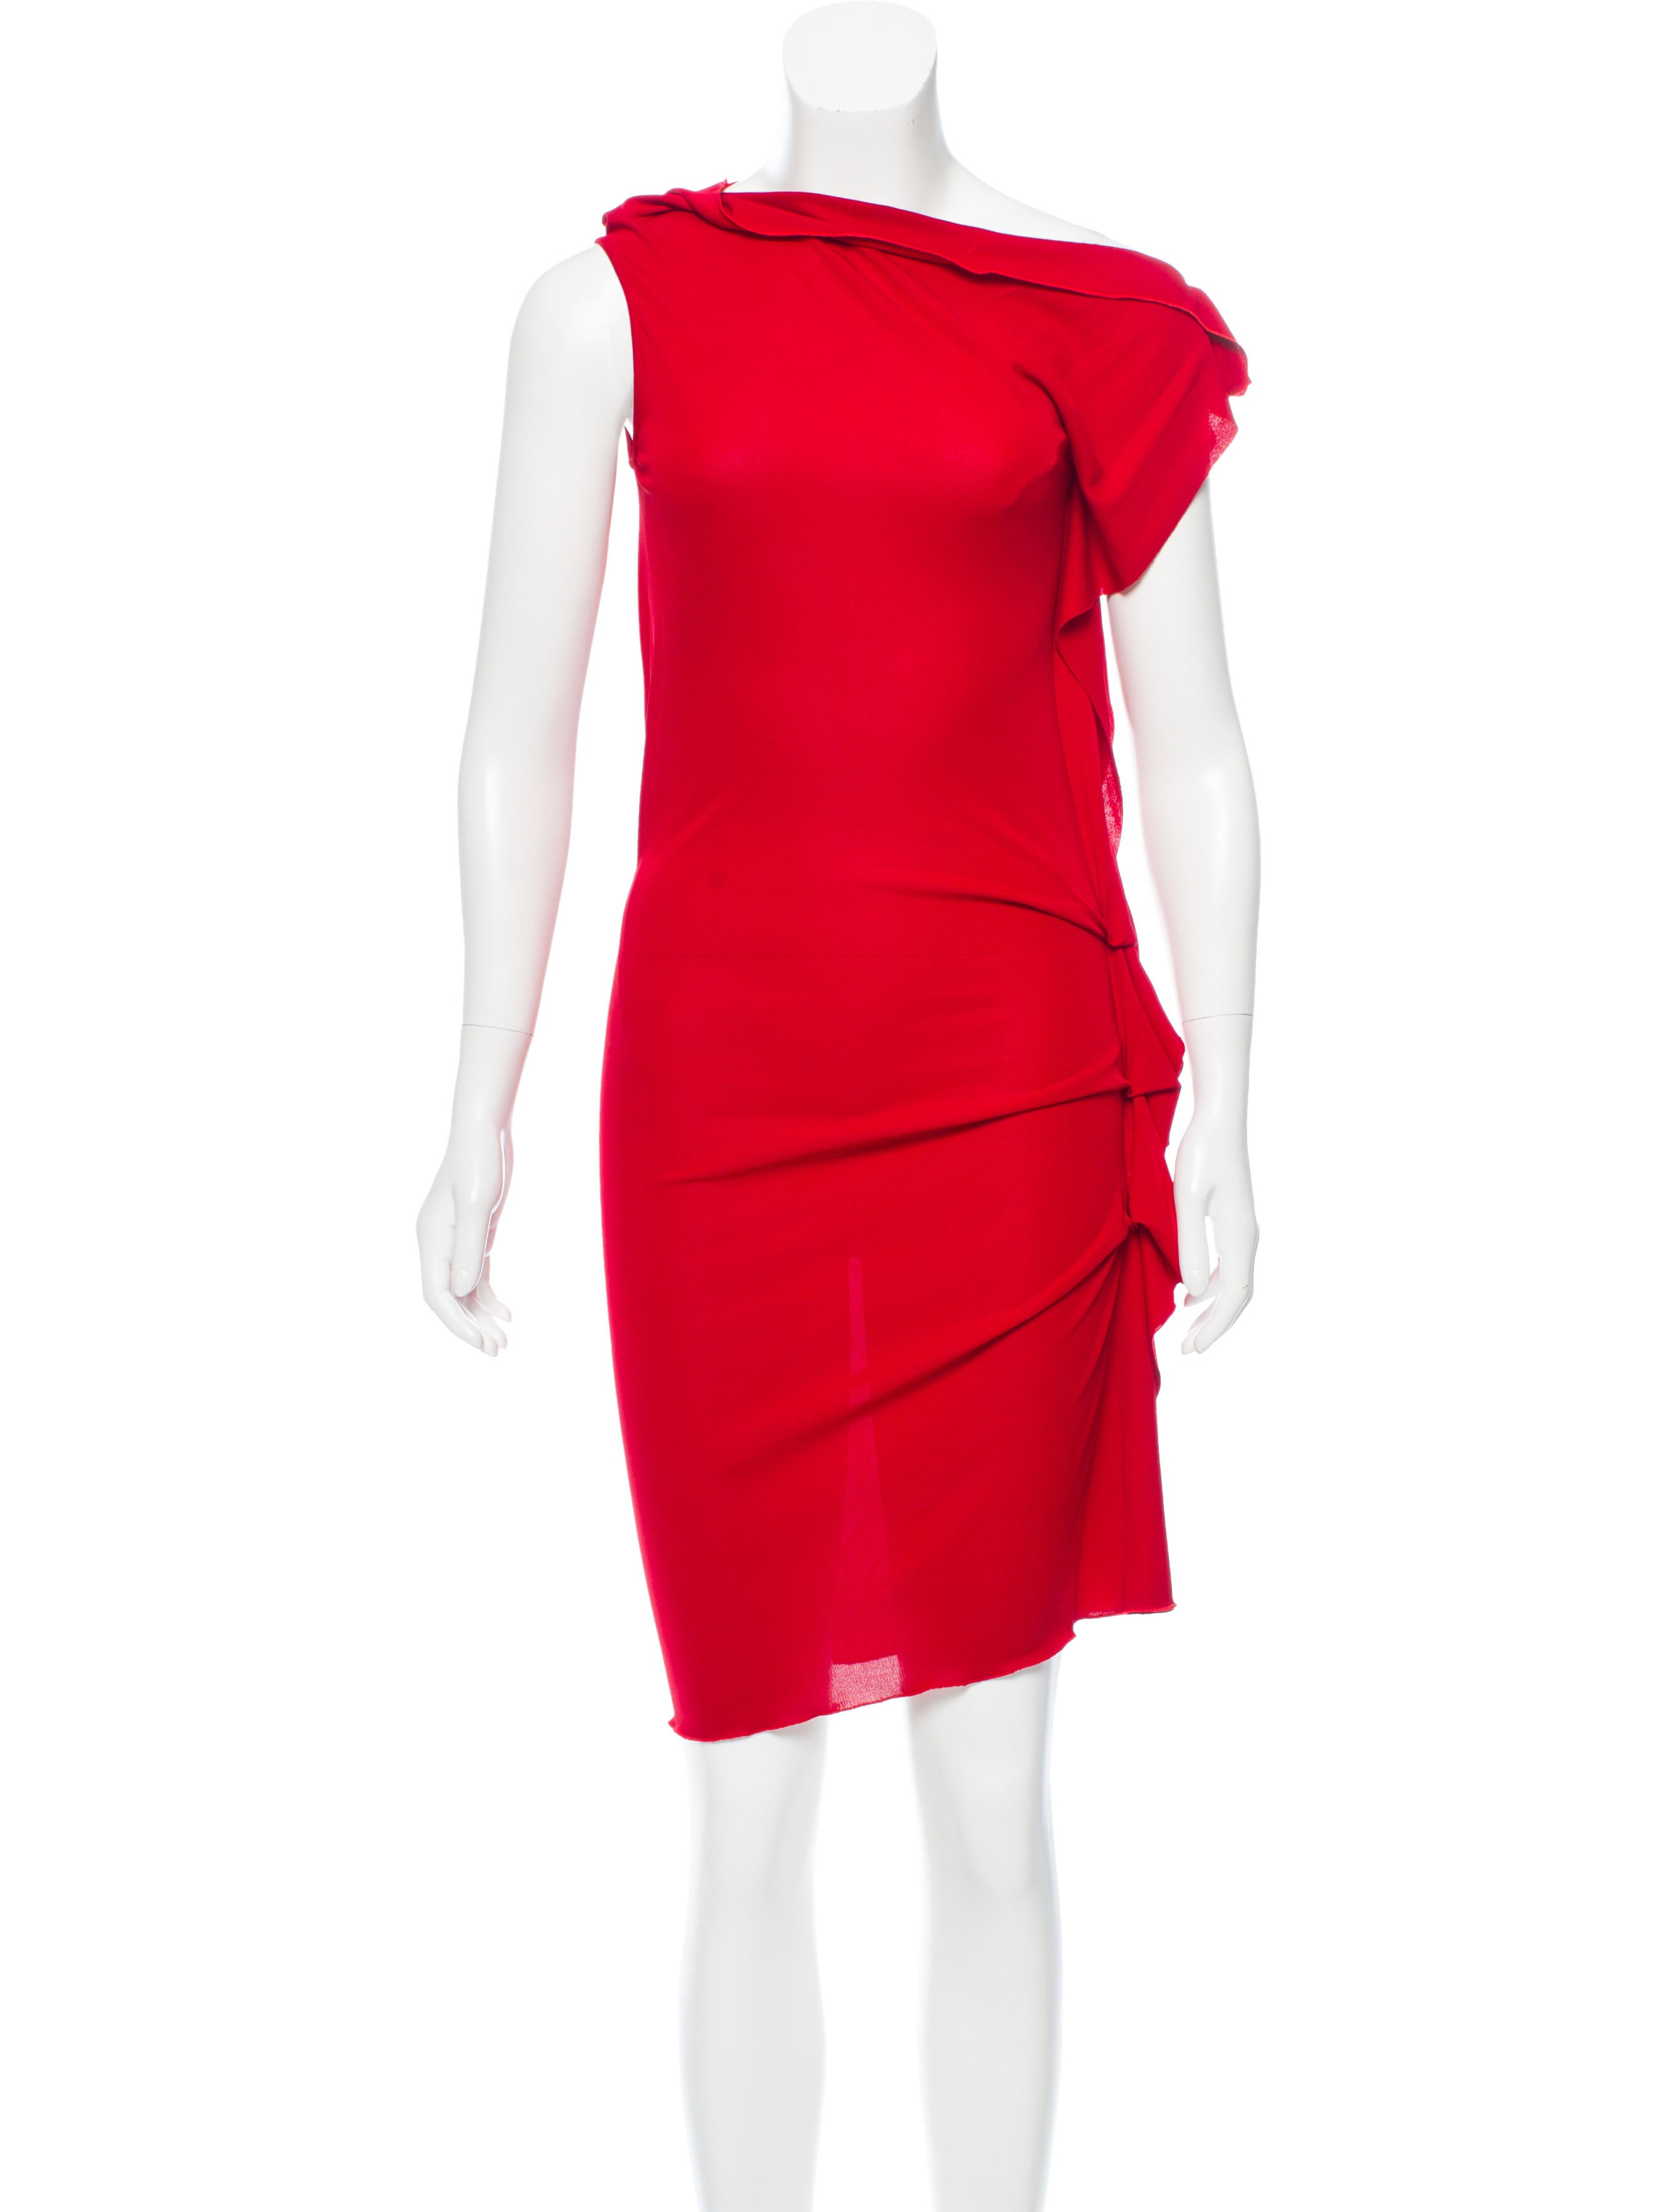 draped by dresses drapes rm midi dress enlarged clothing women roland products the mouret